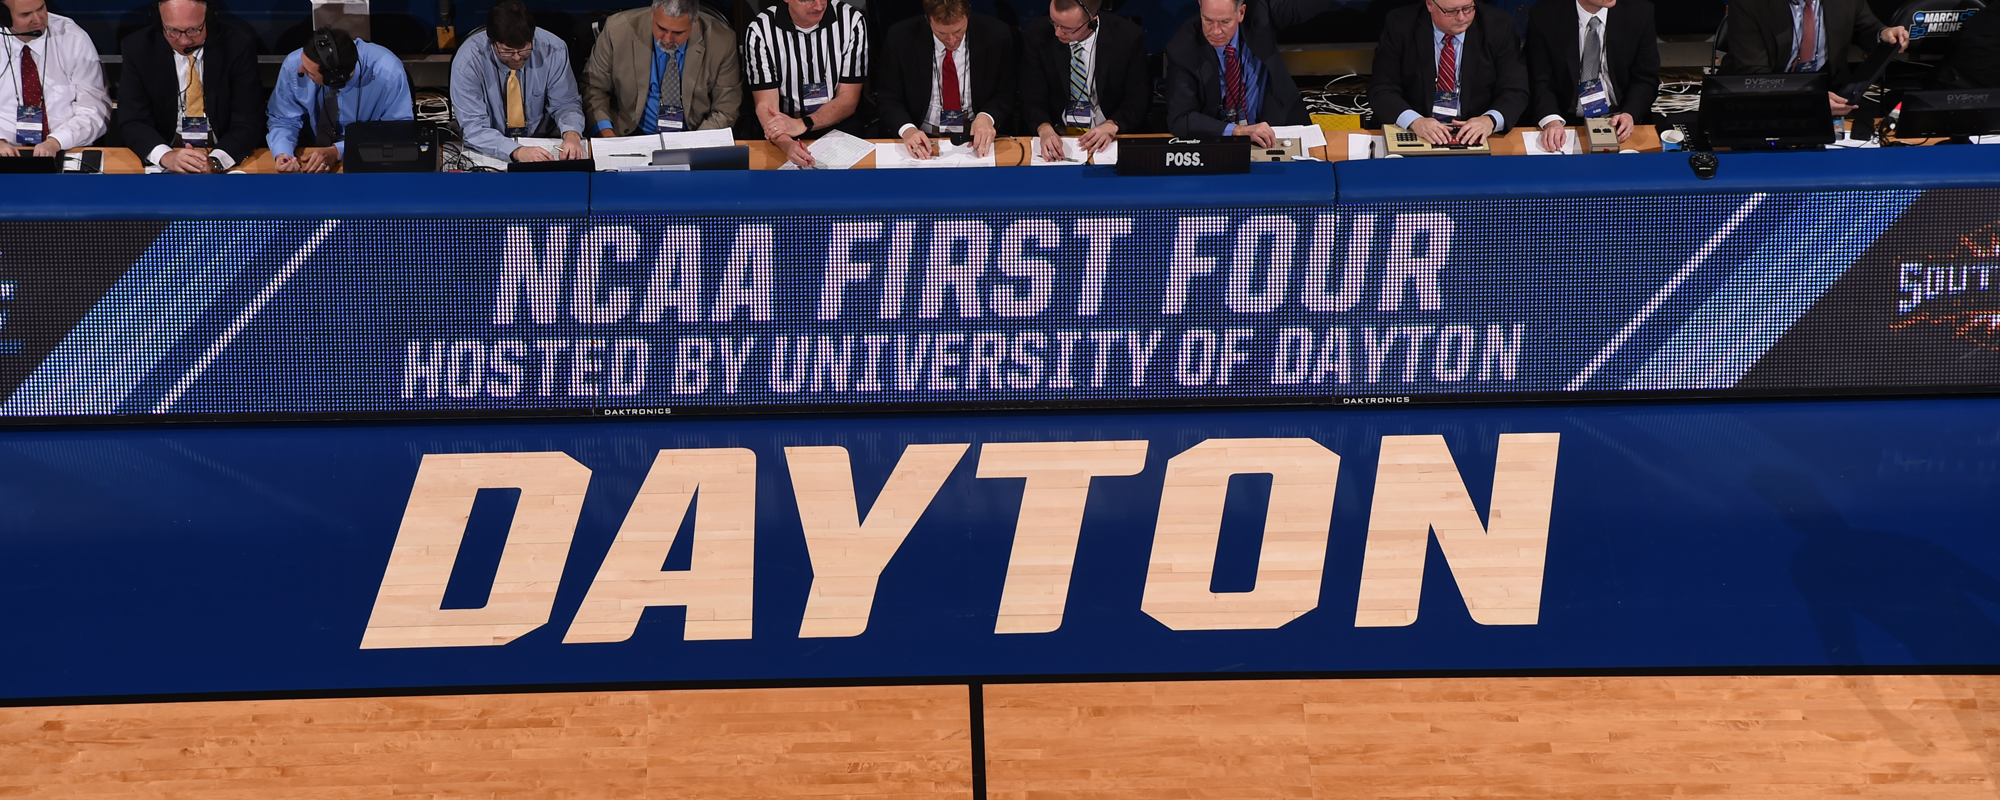 University of Dayton Arena delivers on in-venue WiFi at First Four.  Photo courtesy Dayton Athletics